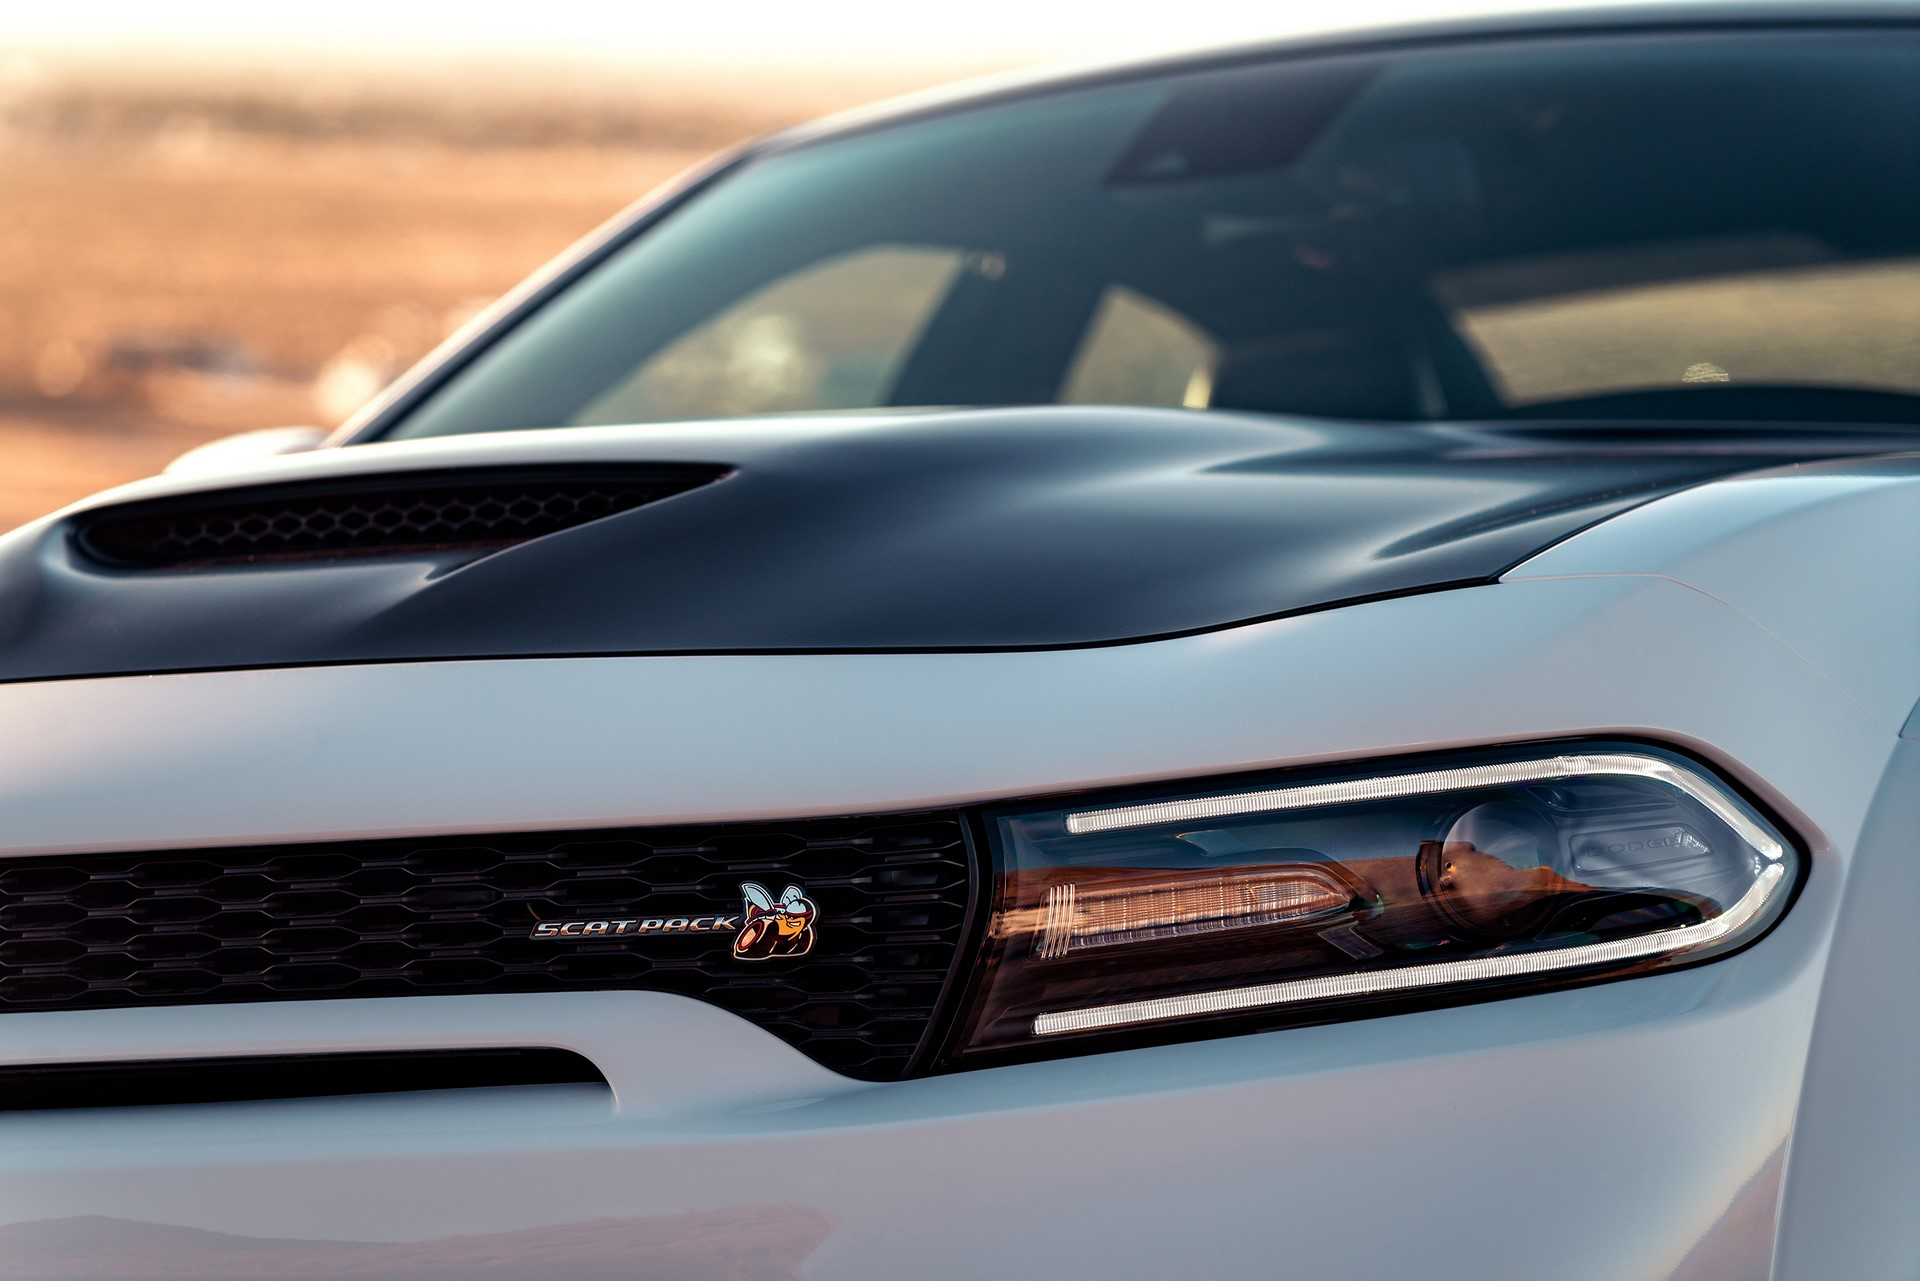 2020 Dodge Charger Scat Pack Widebody features the Scat Pack Bee badge on the front grille